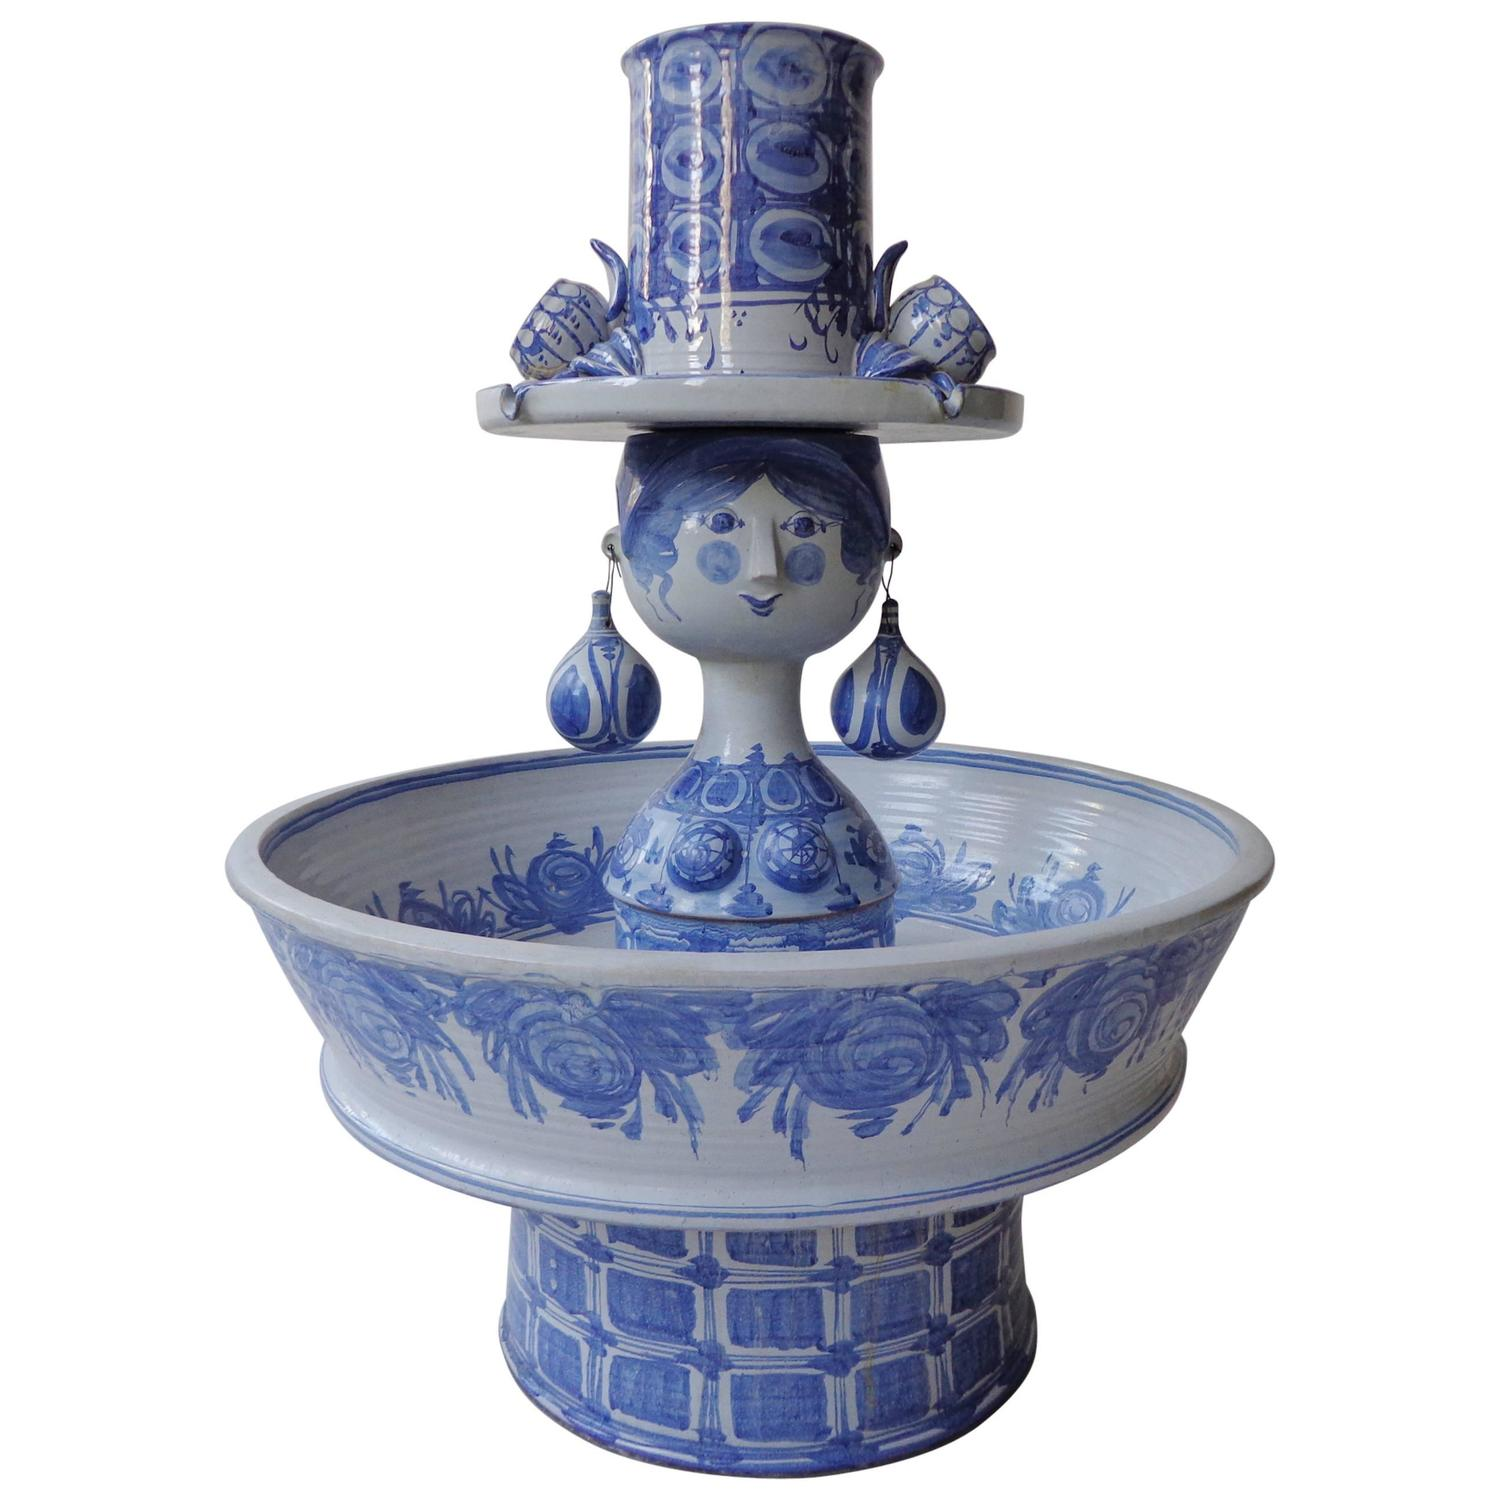 Unique Monumental Fountain By Bjørn Wiinblad In Blue Glaze Ceramic At  1stdibs